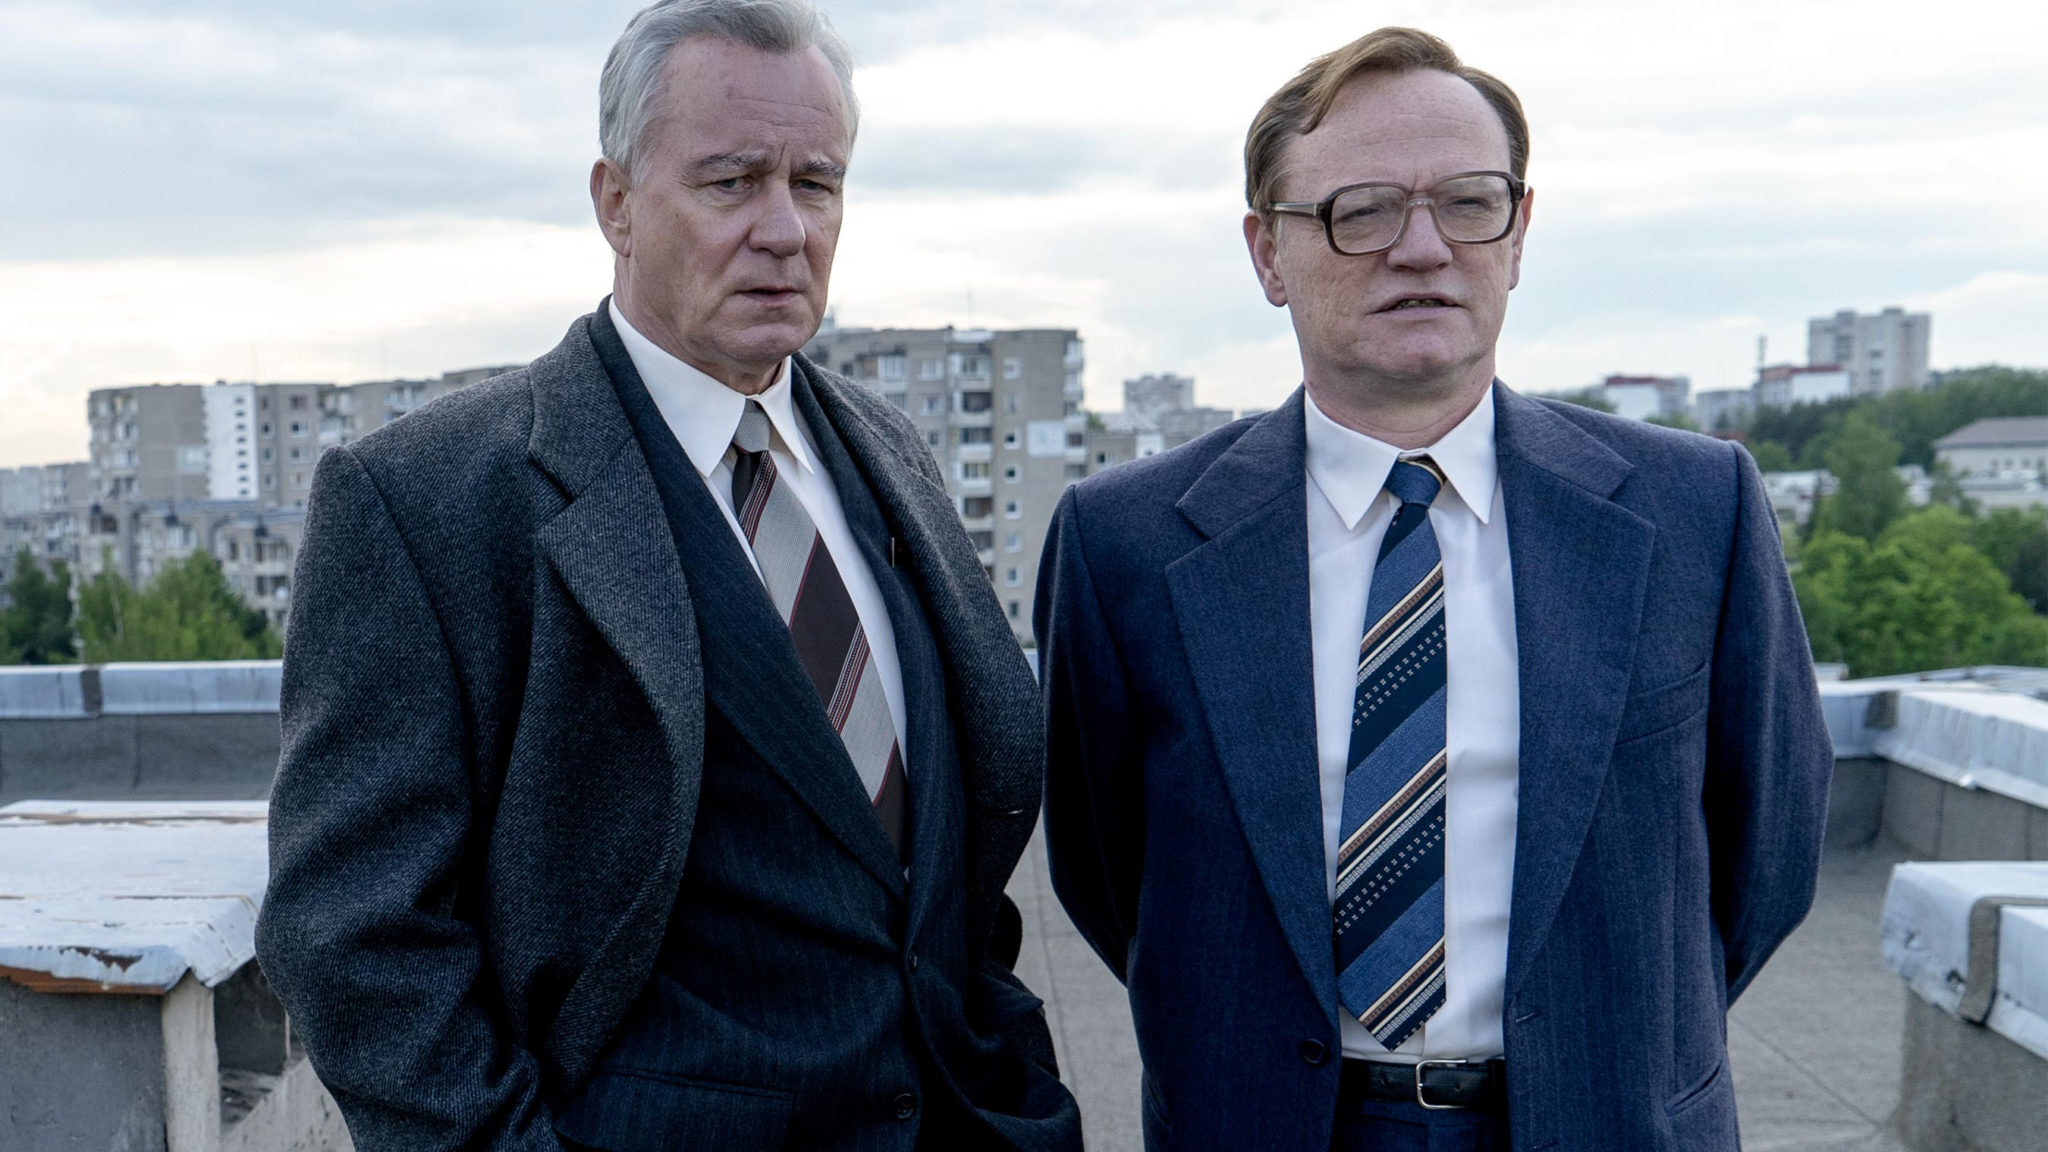 Stellan Skarsgård and Jared Harris